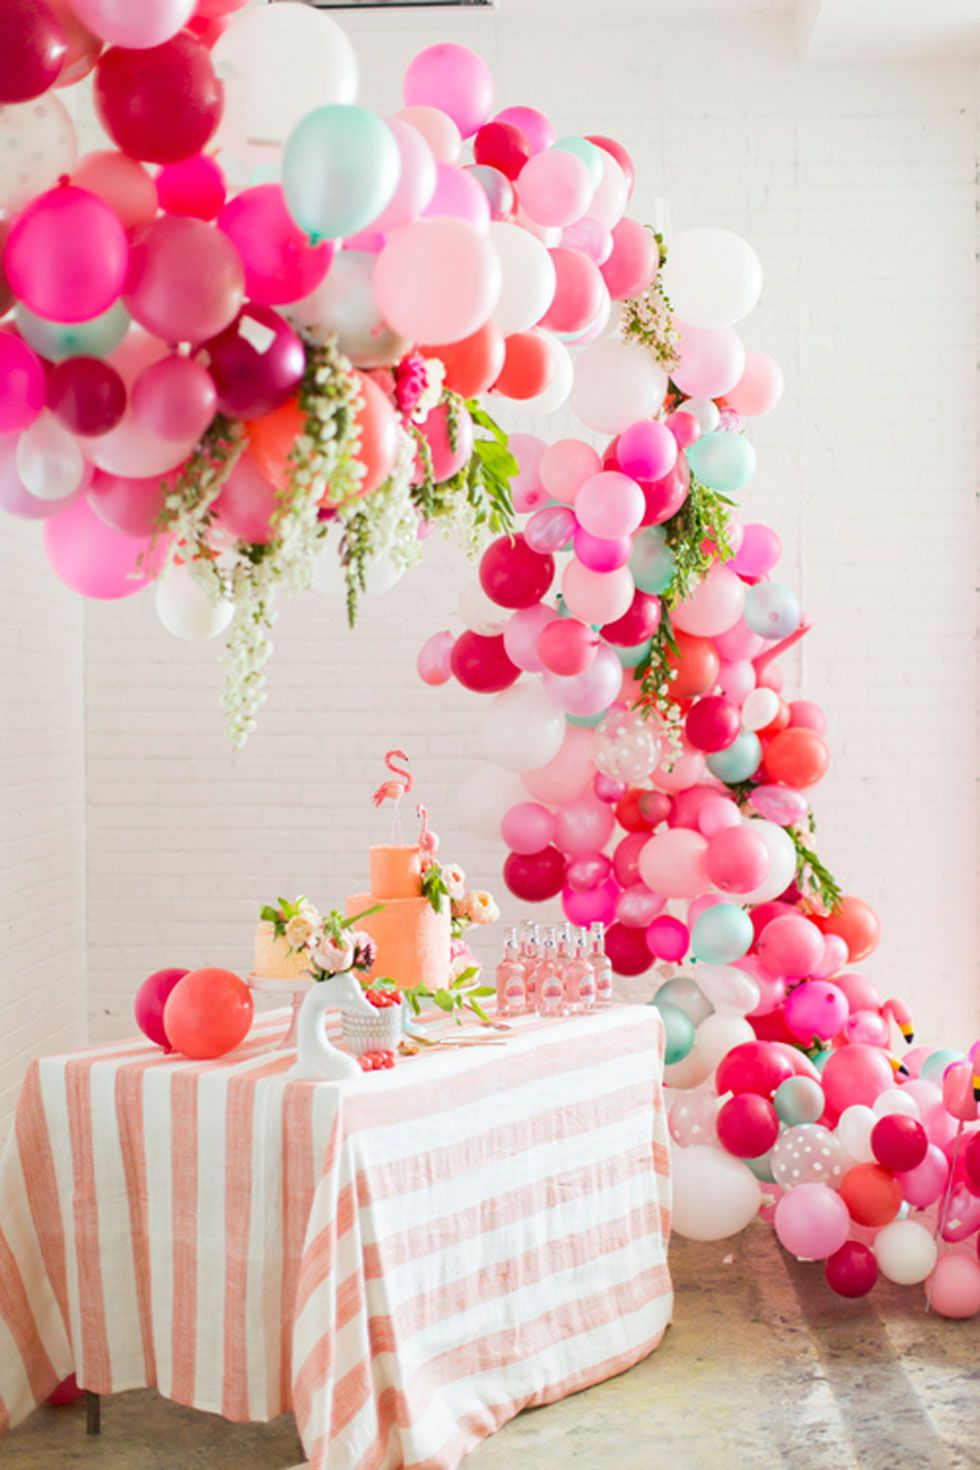 55 Best Bridal Shower Ideas - Fun Themes, Food, and Decorating Ideas ...